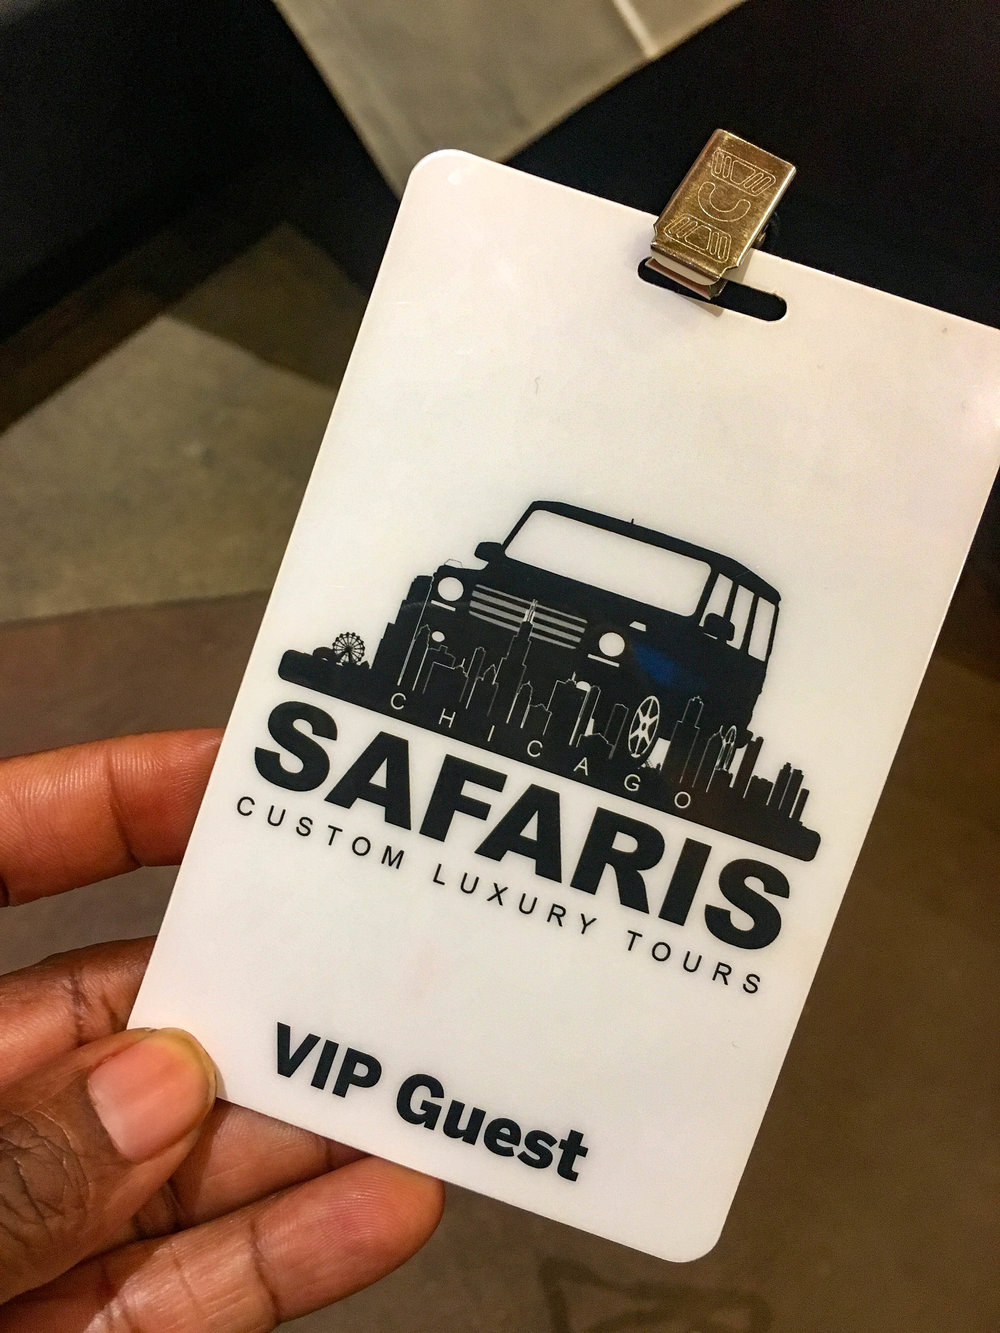 Chicago Safaris offers 3 package levels